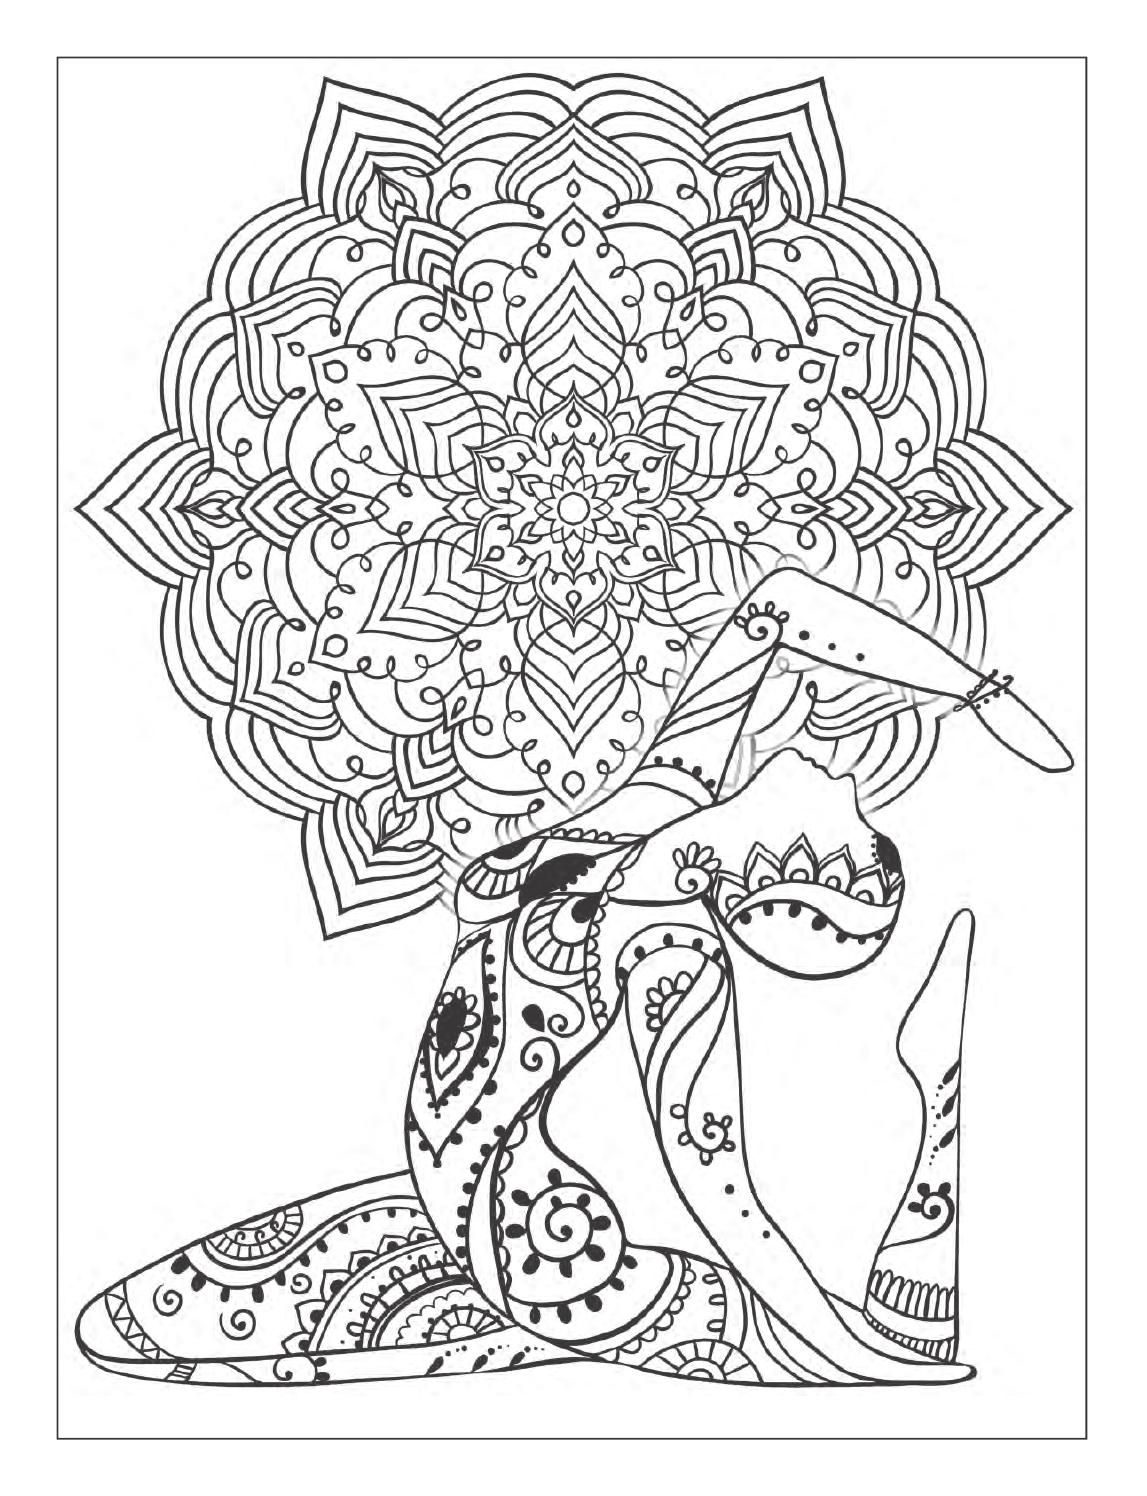 mandala meditation coloring pages amind free printable mandalas coloring relaxing meditation pages coloring mandala